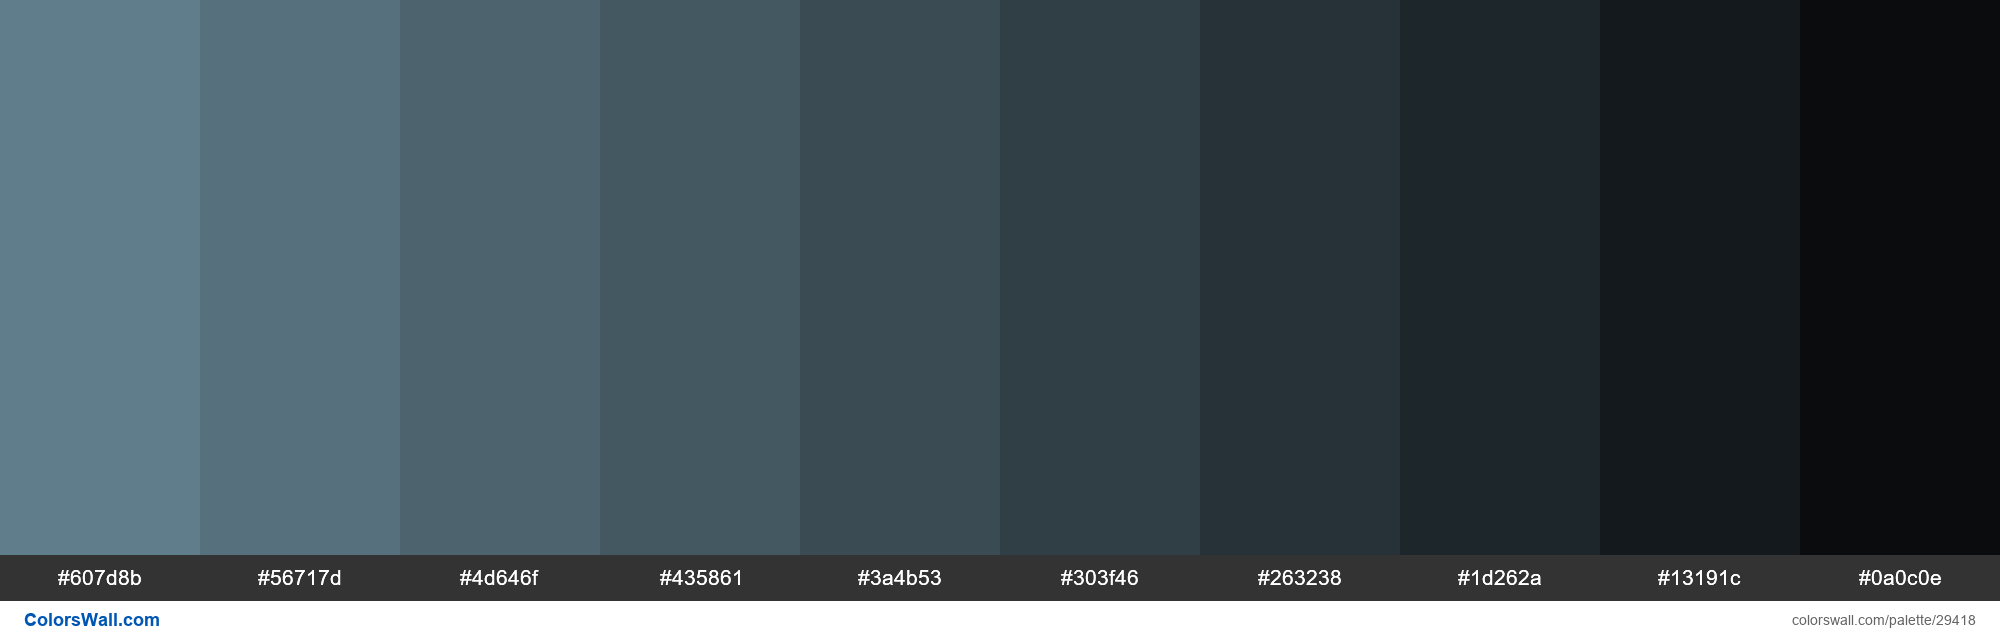 Shades Of Material Design Blue Gray Color 607d8b Hex Hex Rgb Codes